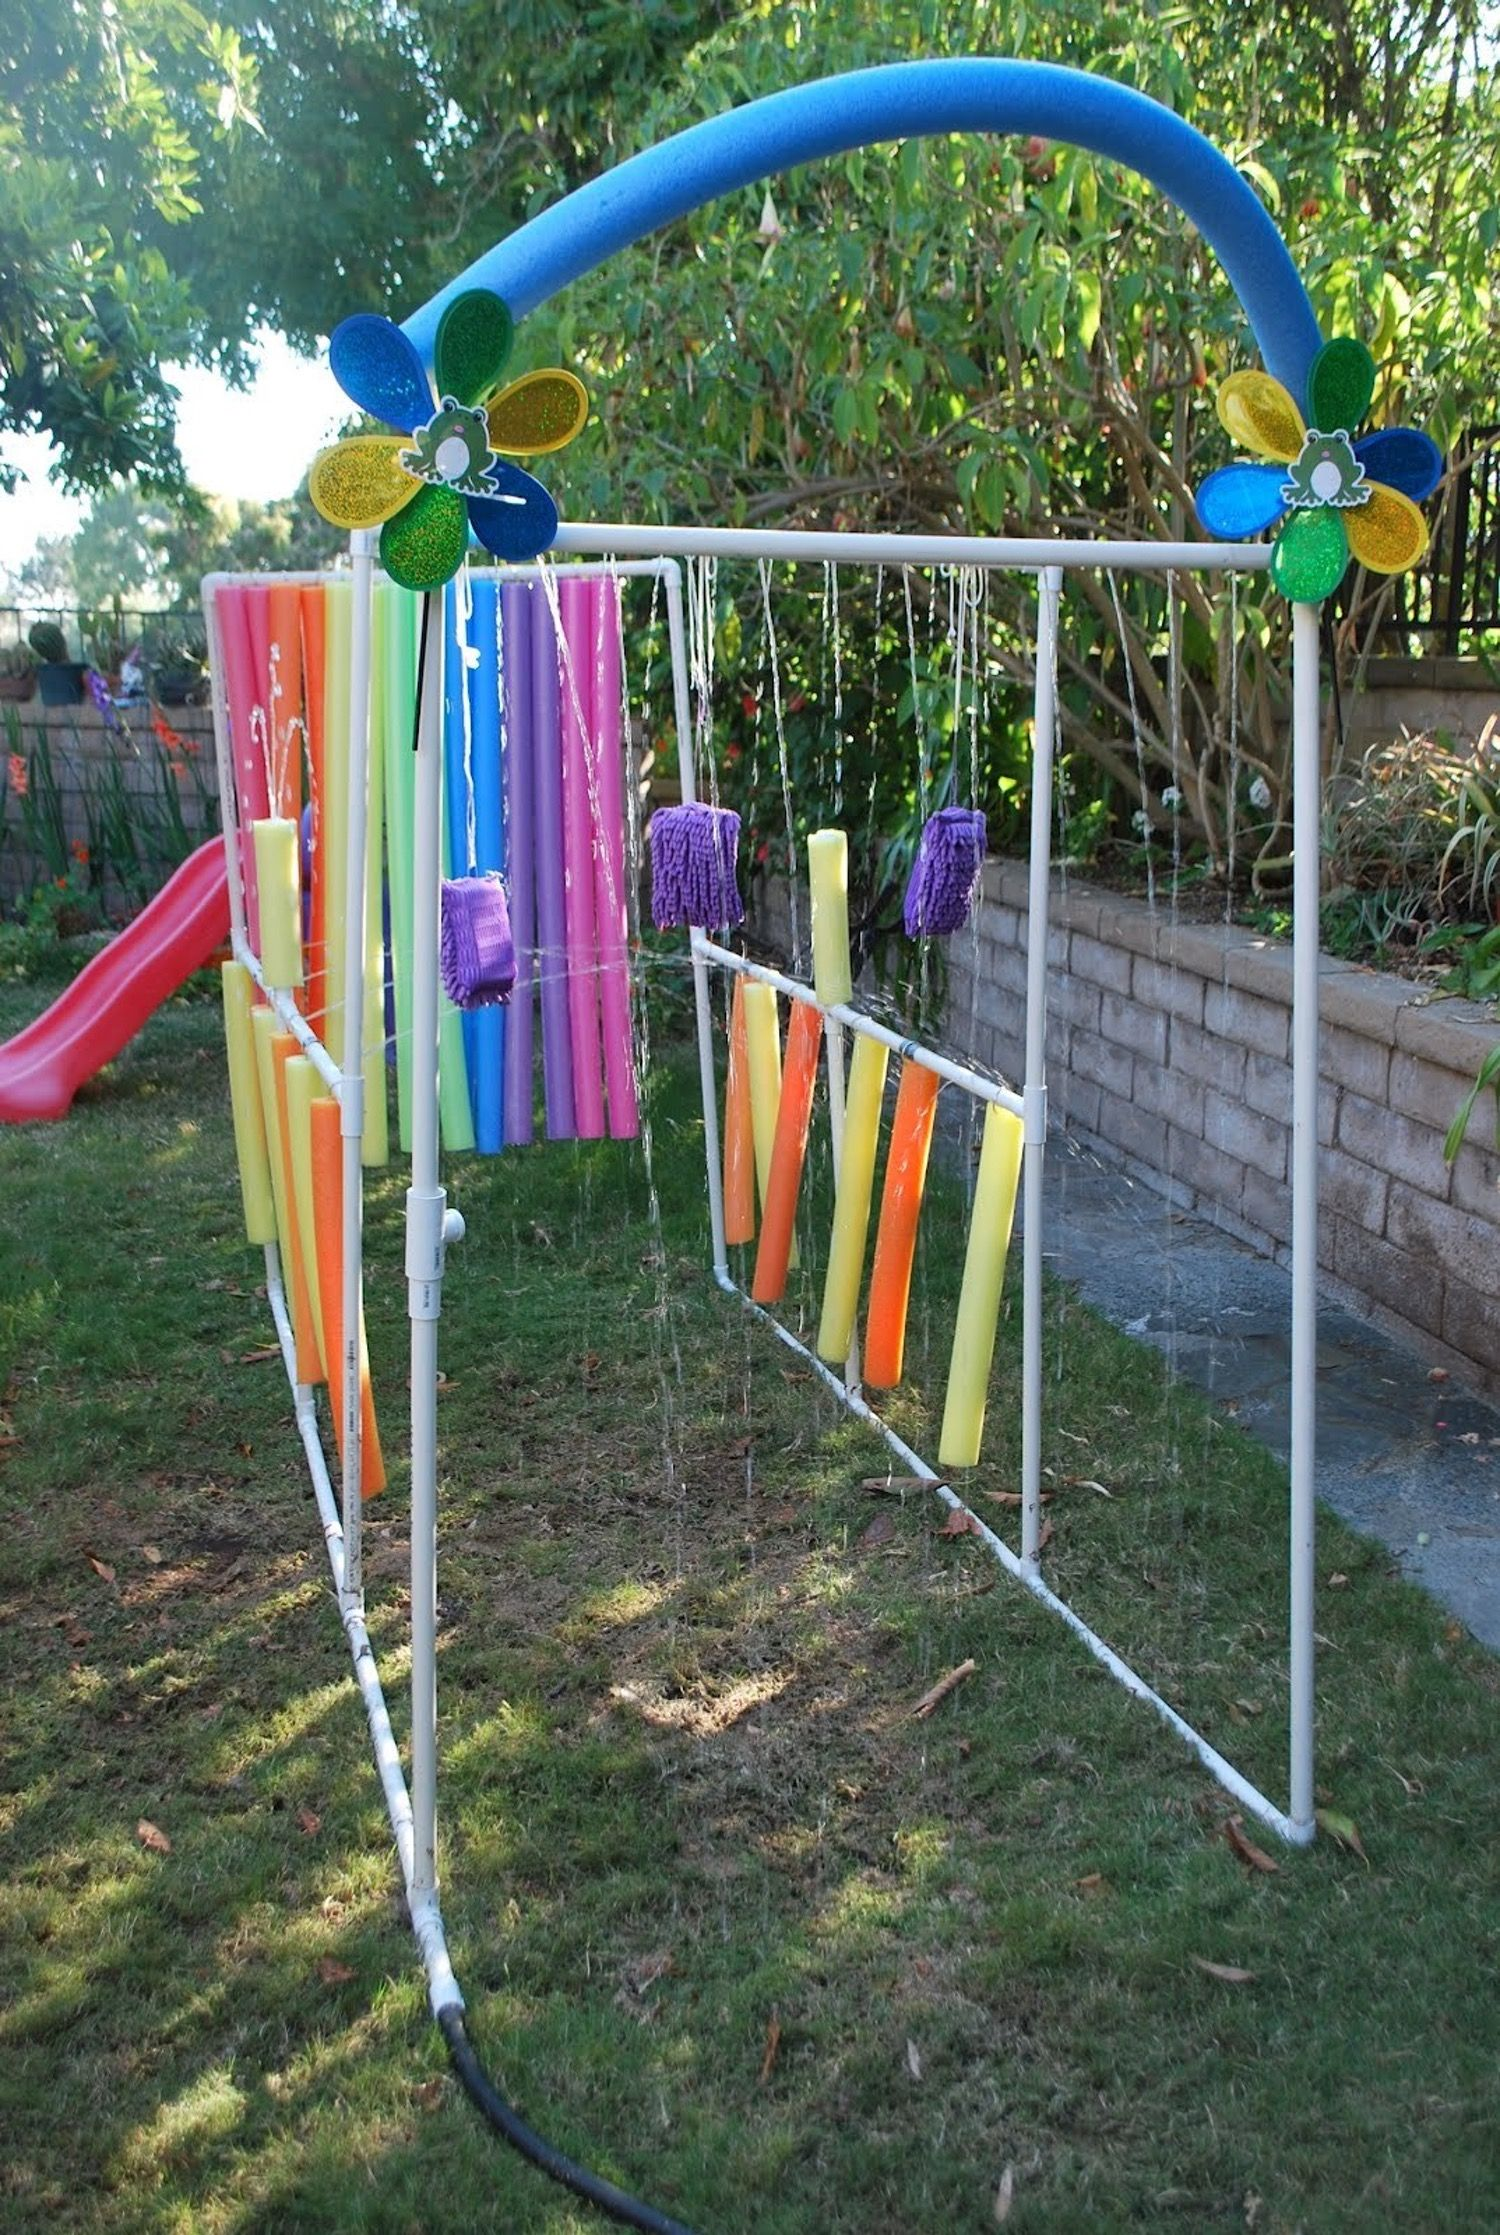 5 ideas for cooling off the kids this summer summer birthdays